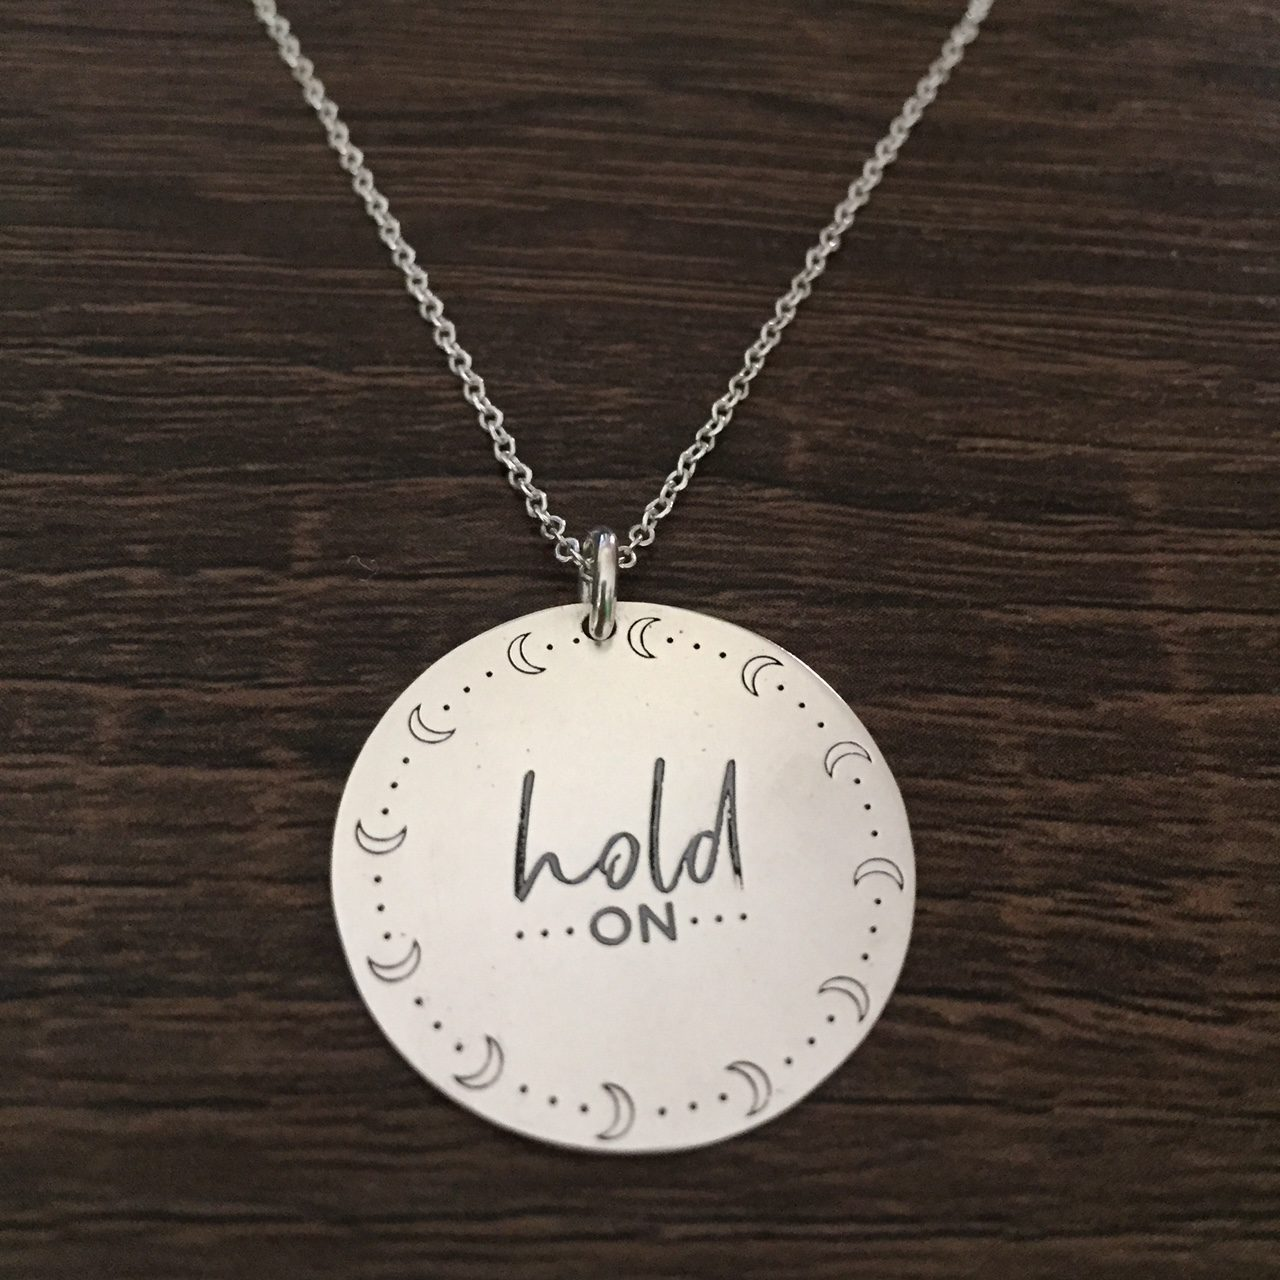 Hold on – Custom laser-engraved sterling silver pendant